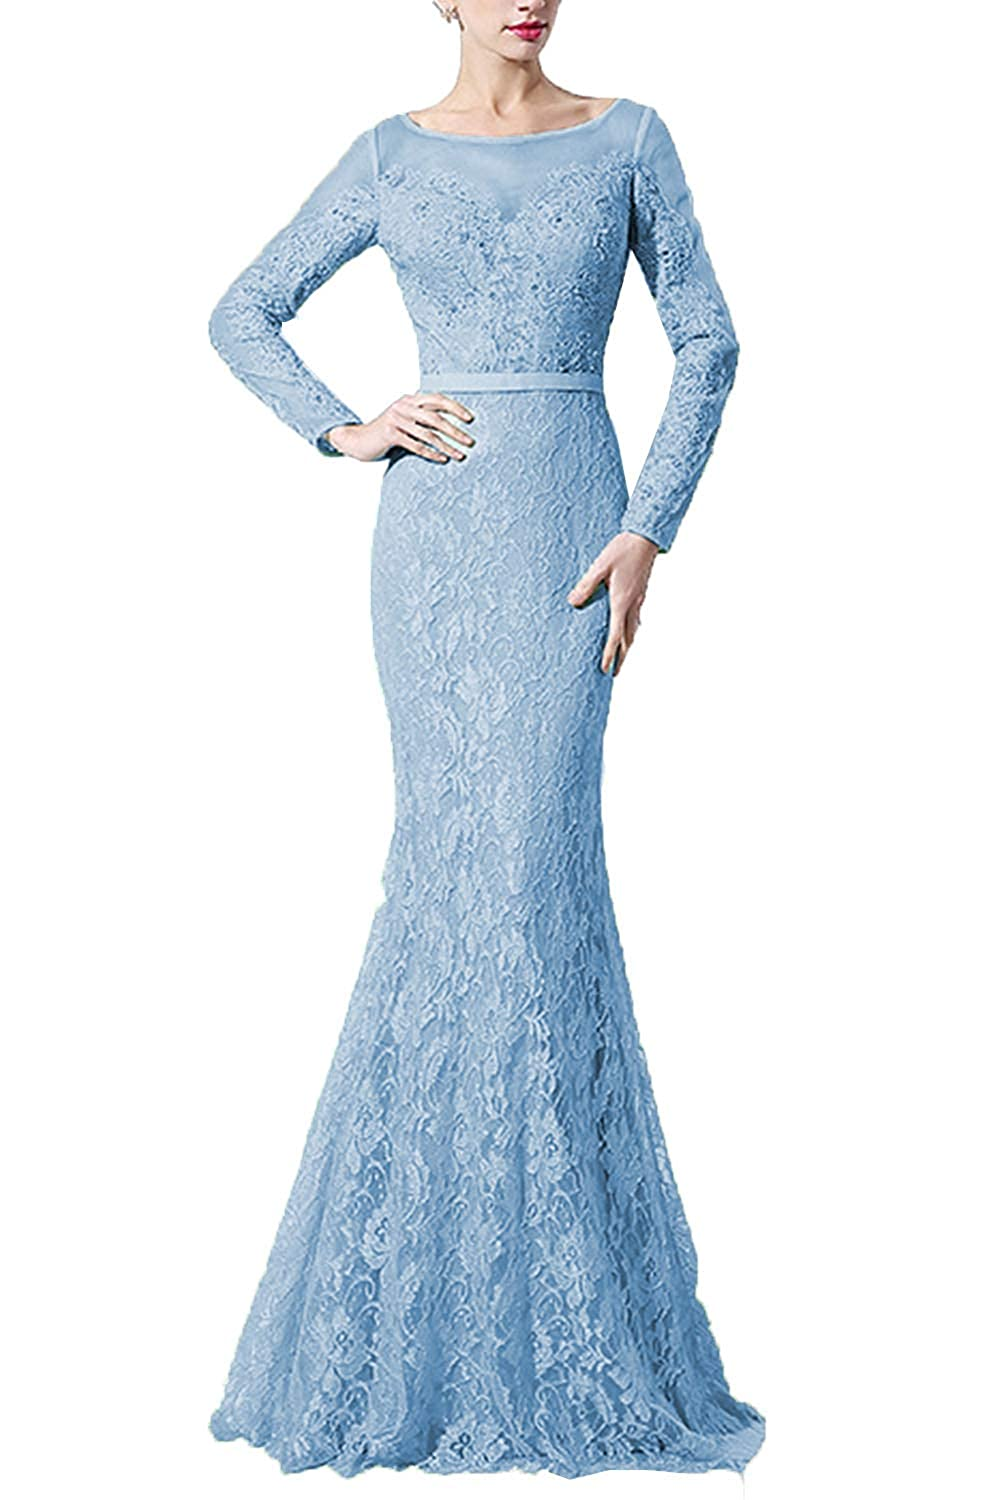 bluee SDRESS Women's Lace Mermaid Evening Dress with Sleeves Crystal Beaded Formal Dress Long